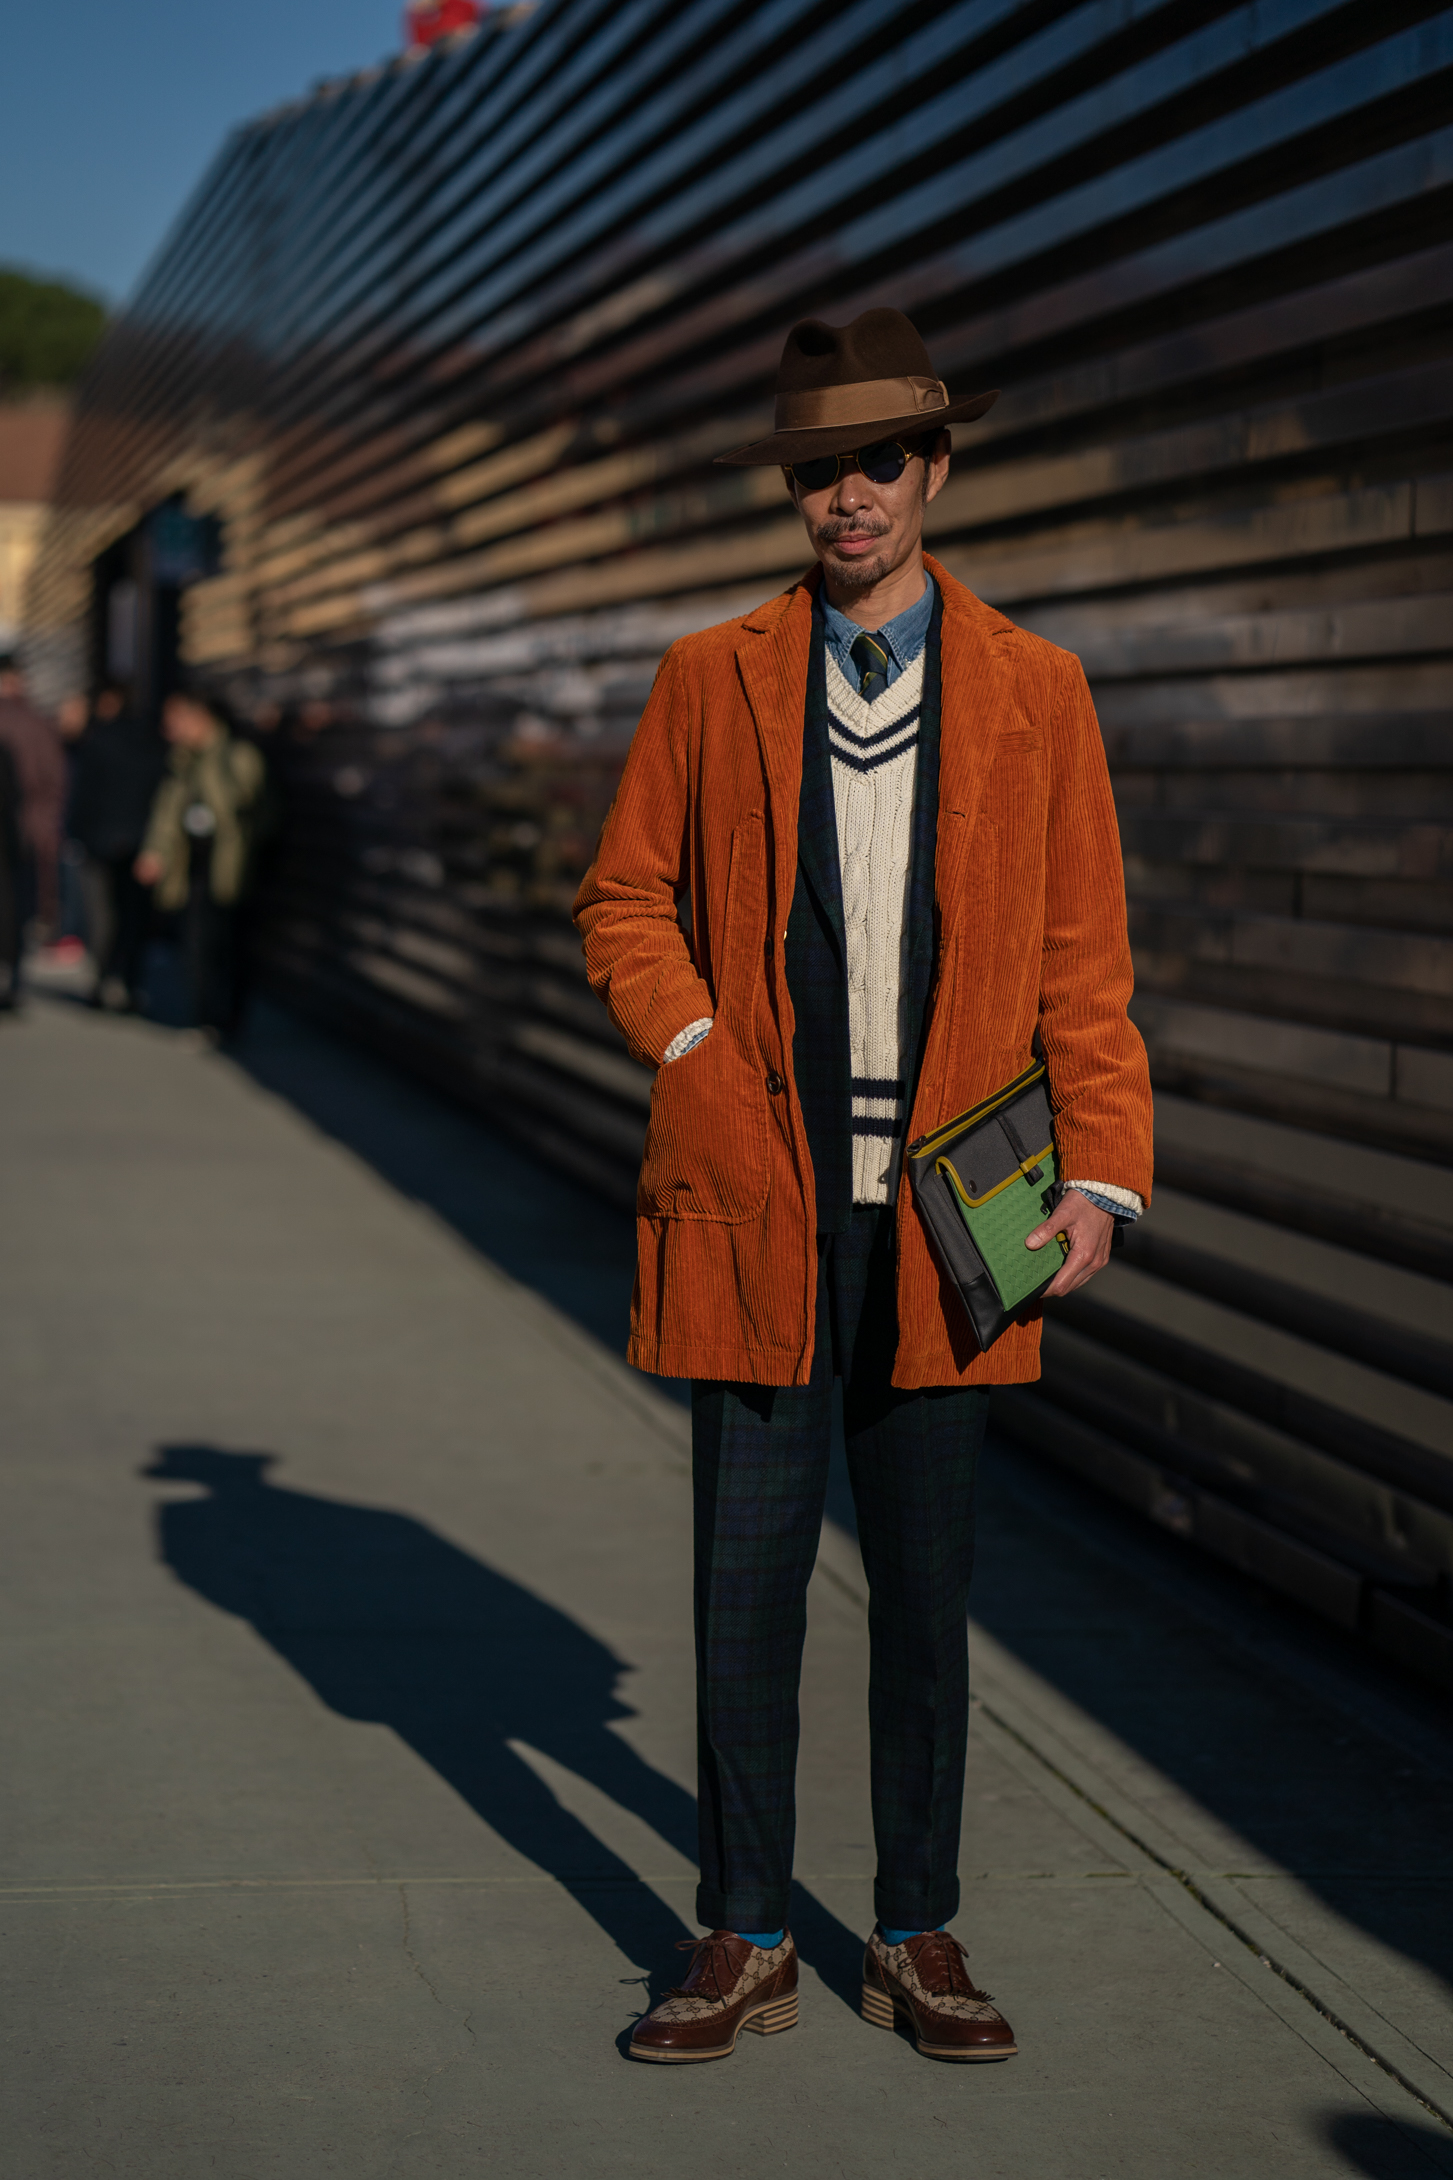 The Best Street Style From Pitti Uomo 97